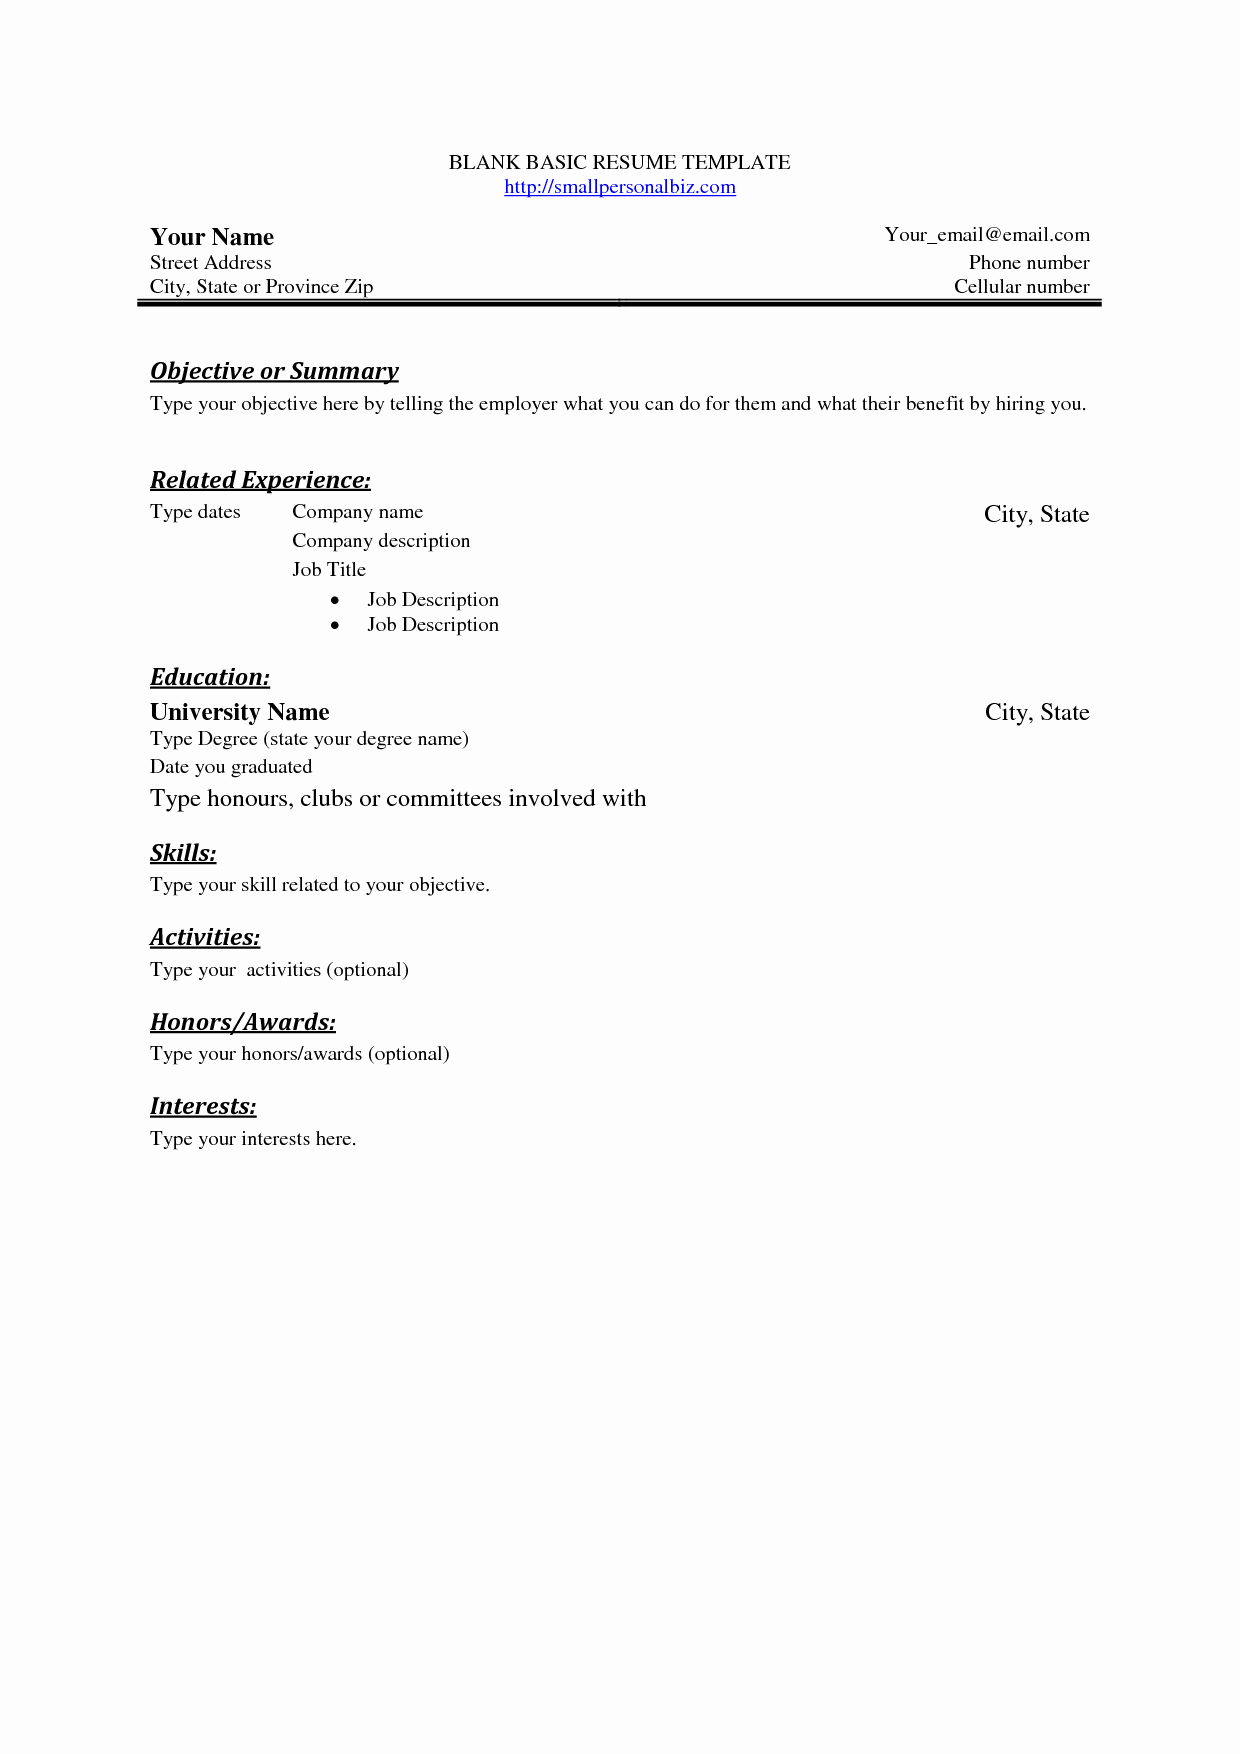 Simple Resume Examples for Jobs Awesome Pinterest